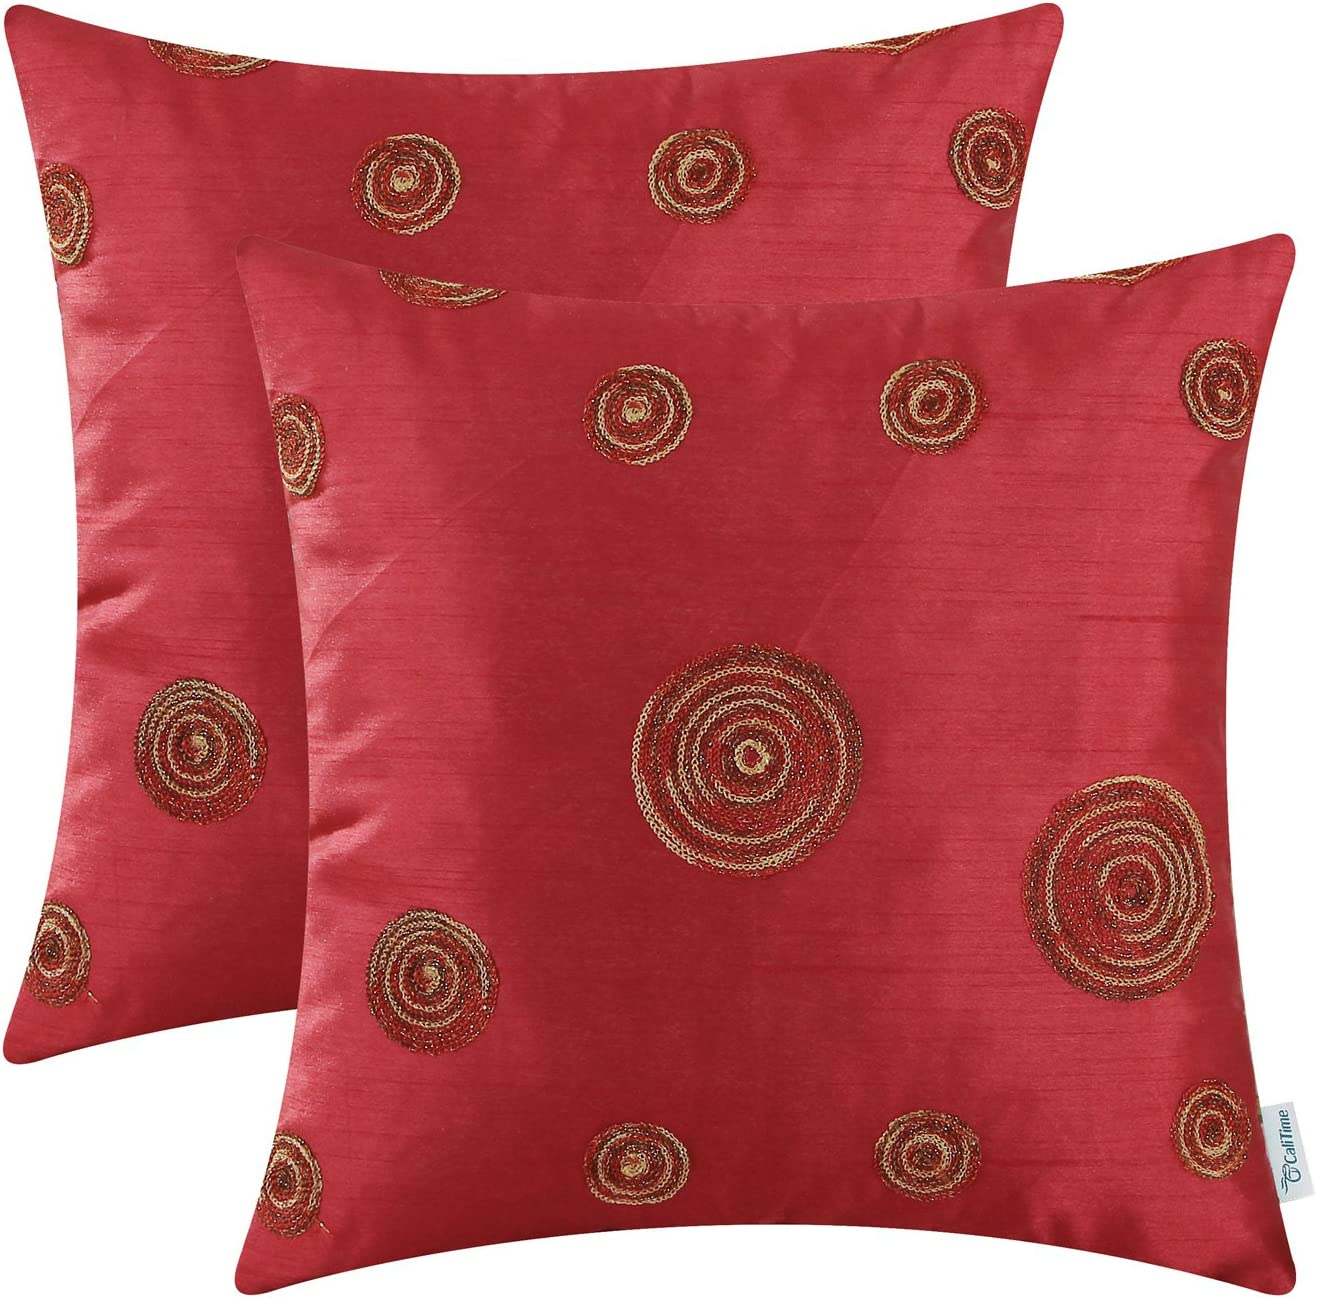 CaliTime Pack of 2 Cushion Covers Throw Pillow Cases Shells for Sofa Couch Home Decoration 18 X 18 Inches Modern Random Circles Rings Geometric Chain Embroidered Deep Red